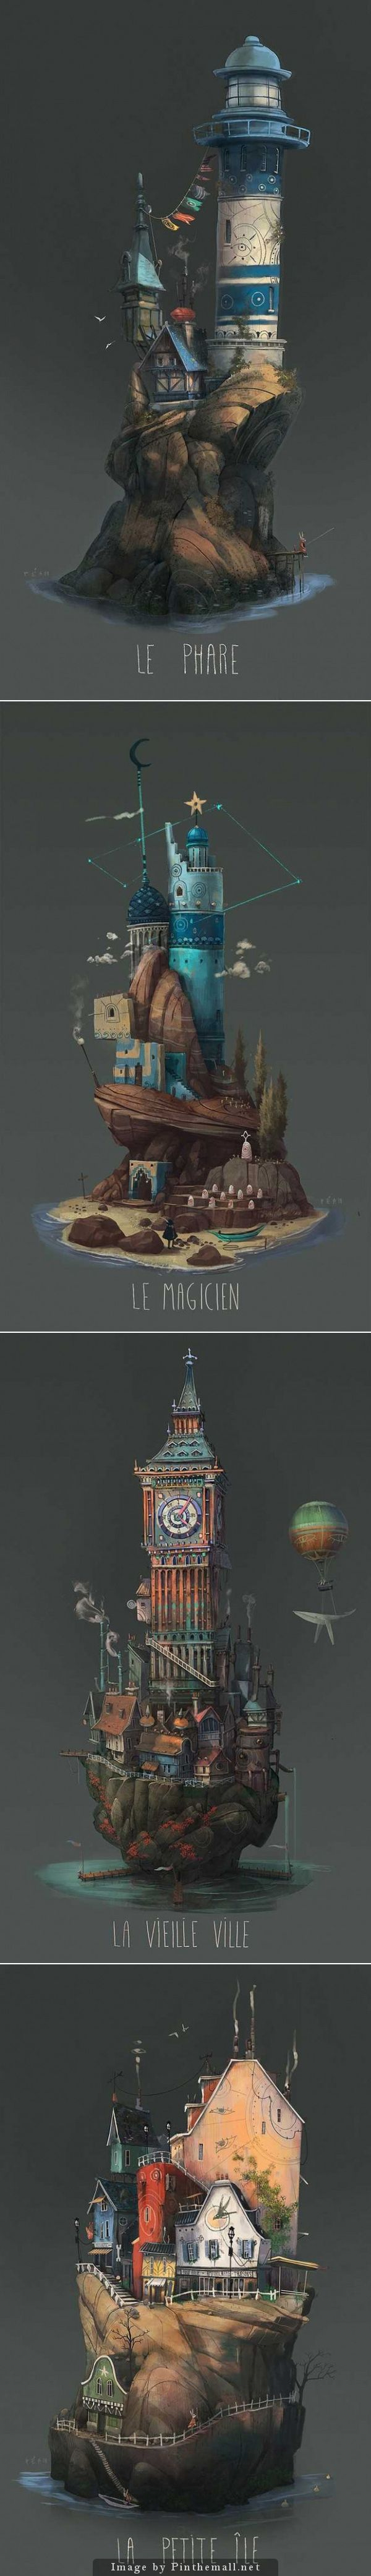 Illustrations by Pierre-Antoine Moelo - created via http://pinthemall.net